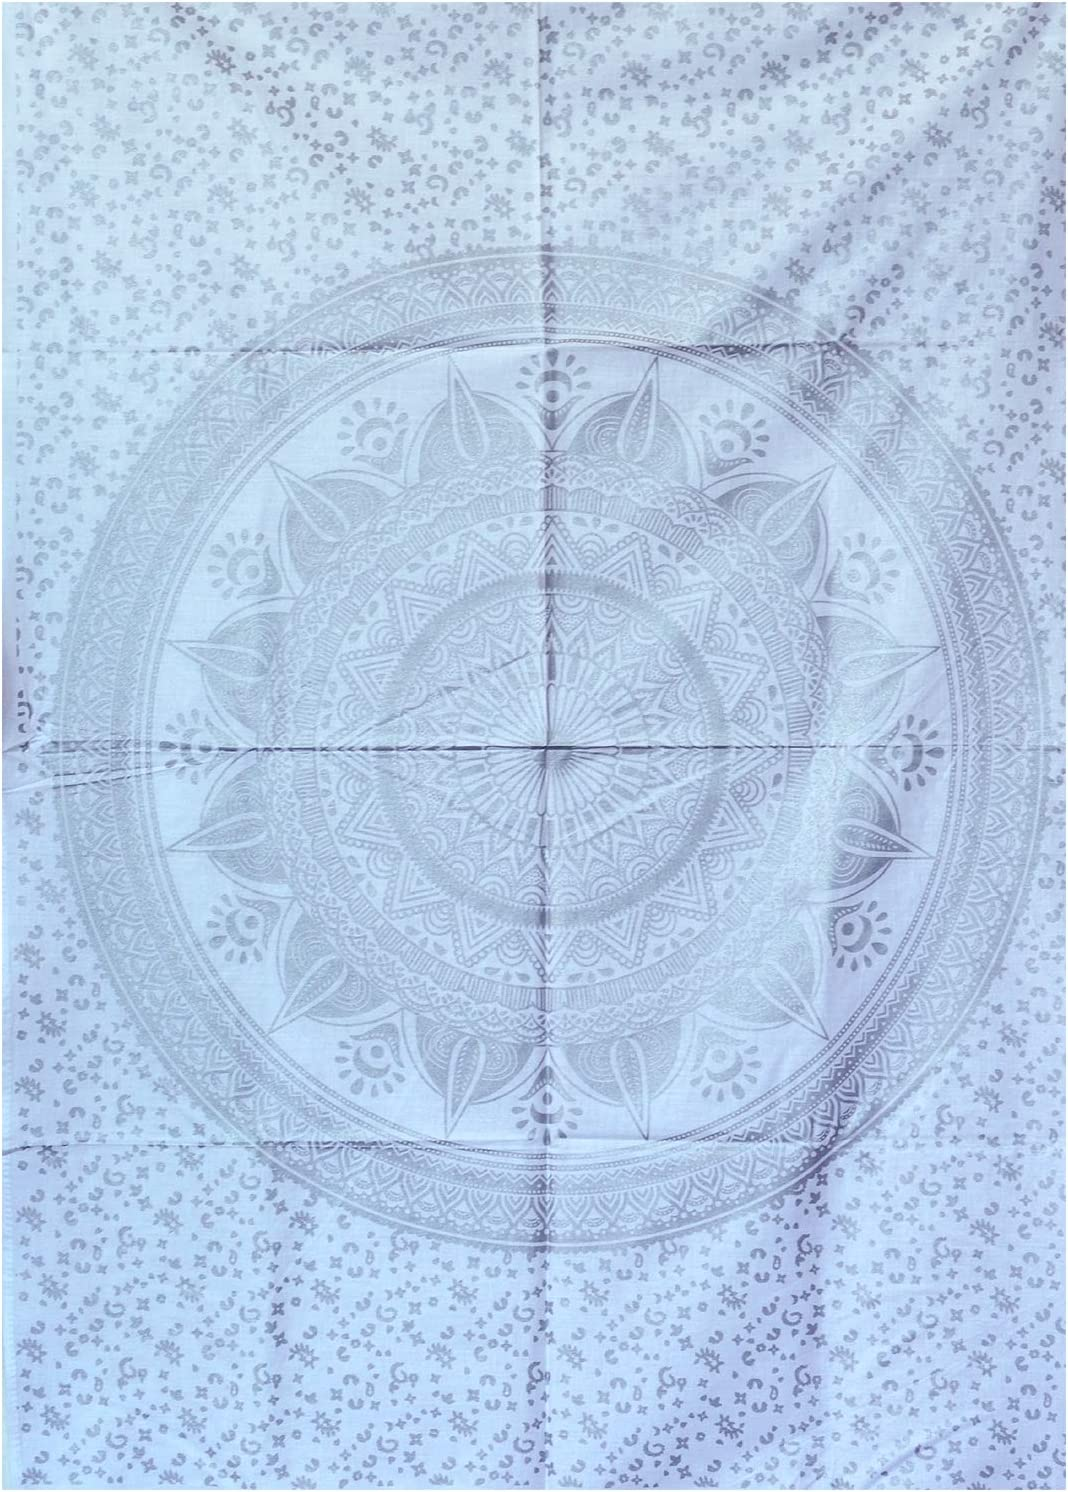 Glittering Silver Grey Tapestry Wall Hanging Mandala-Bohemian Room Decor-Indian Cotton Throw Hippie Tapestries -Boho Bedding White Bedspread 102x76 cms-Meditation Yoga Mat Rugs for Mother's day gift